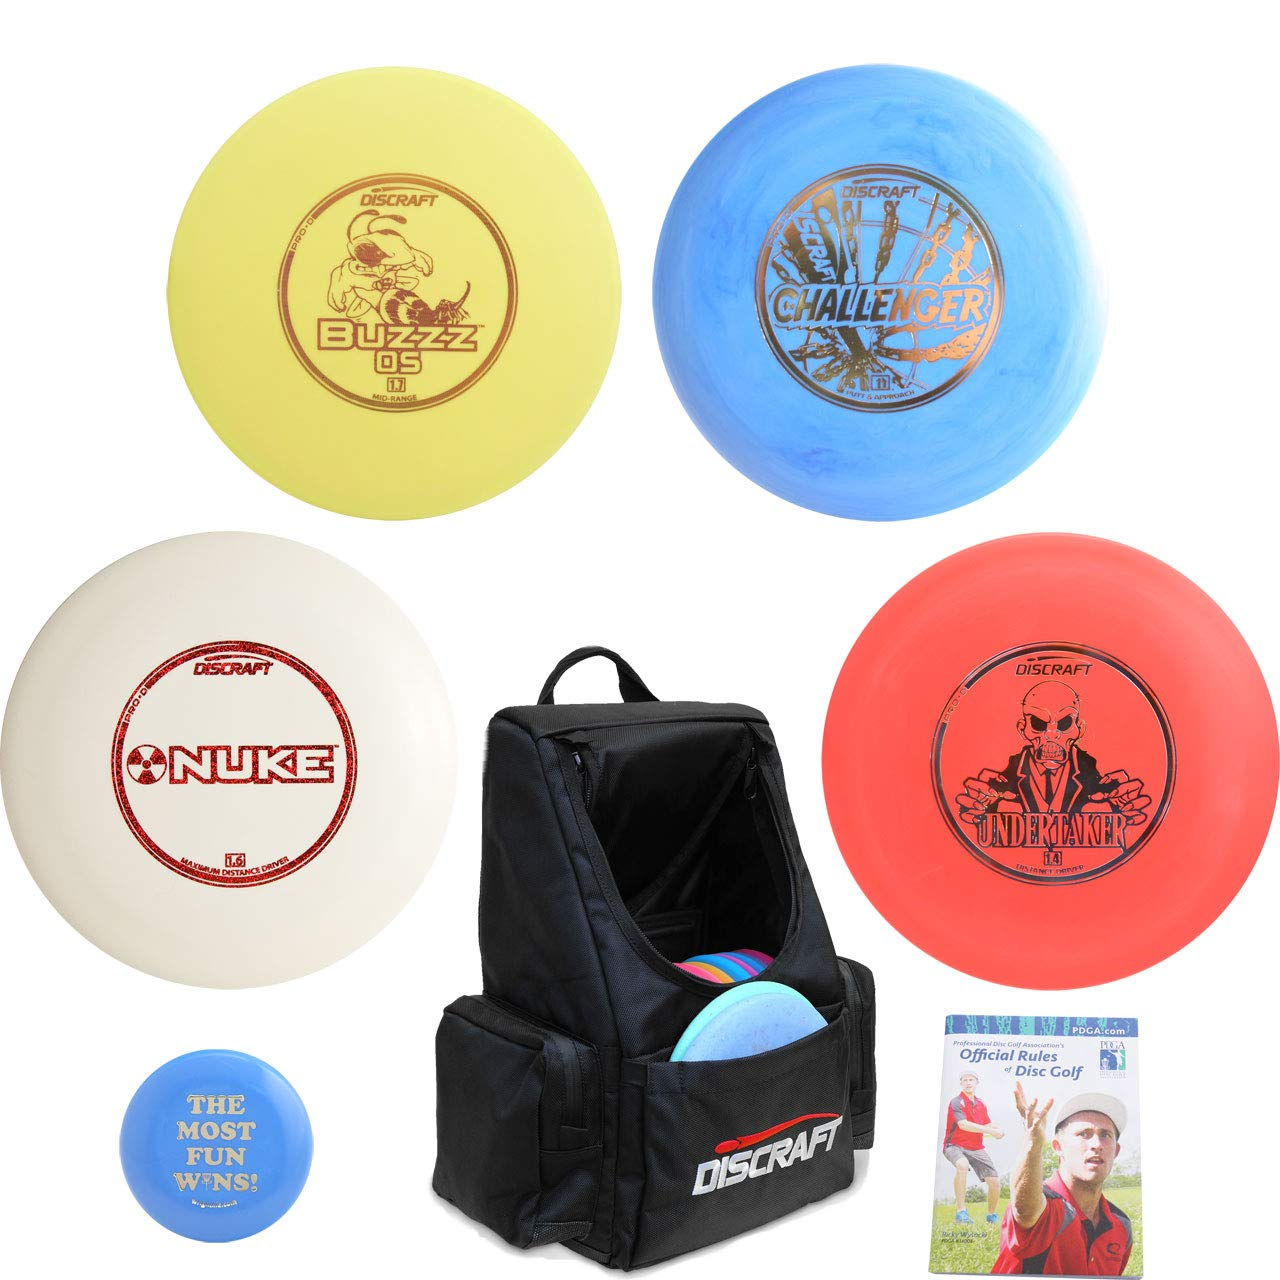 Discraft Complete Disc Golf Advanced Set Gift Bundle - Tournament Backpack Bag, 2 Drivers, Mid-Range, Putter + Mini Marker Disc & Rules (Black) by Discraft